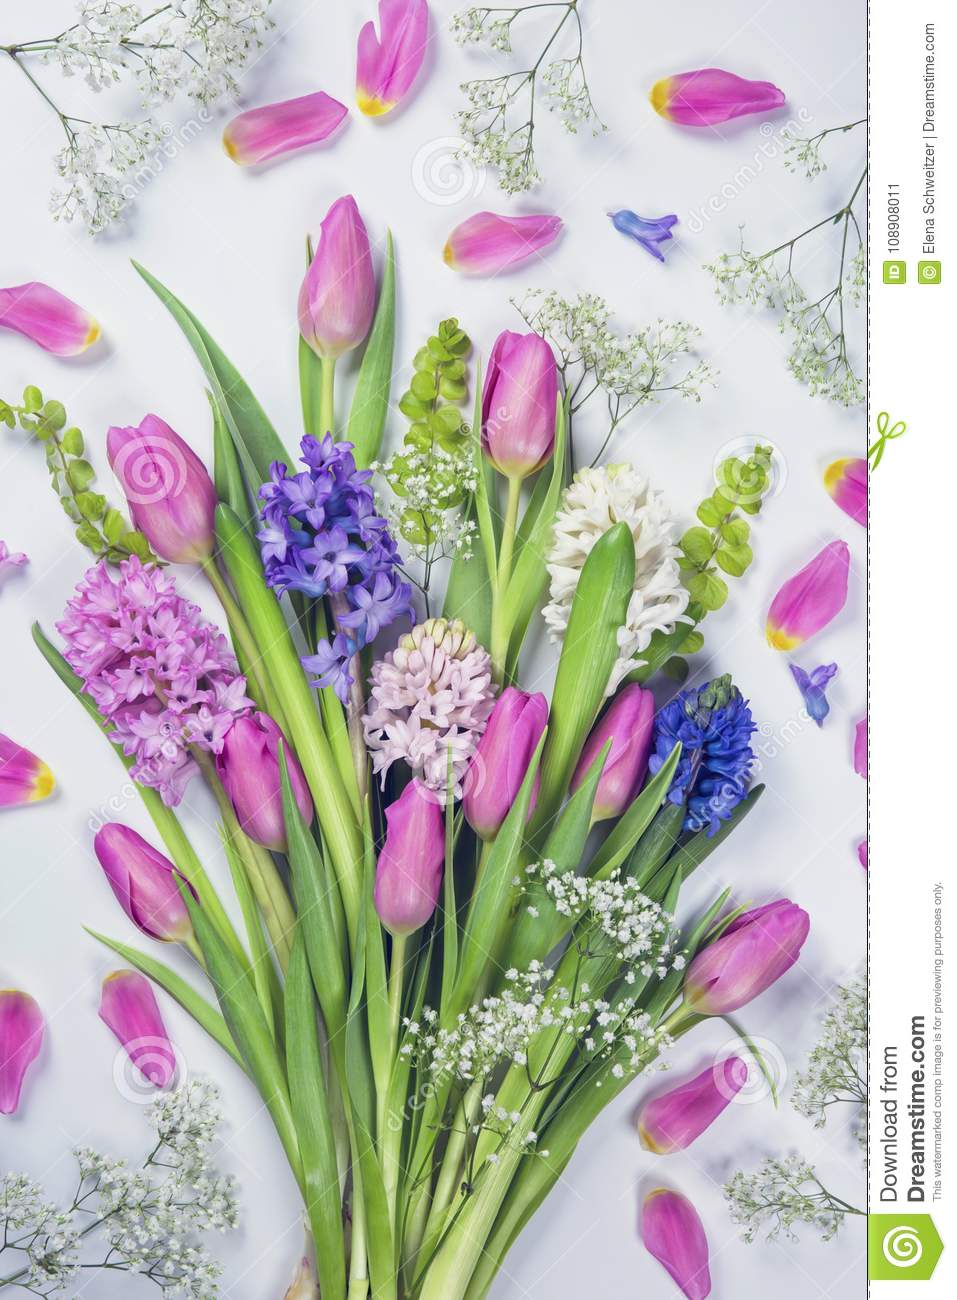 Pastel colored flowers